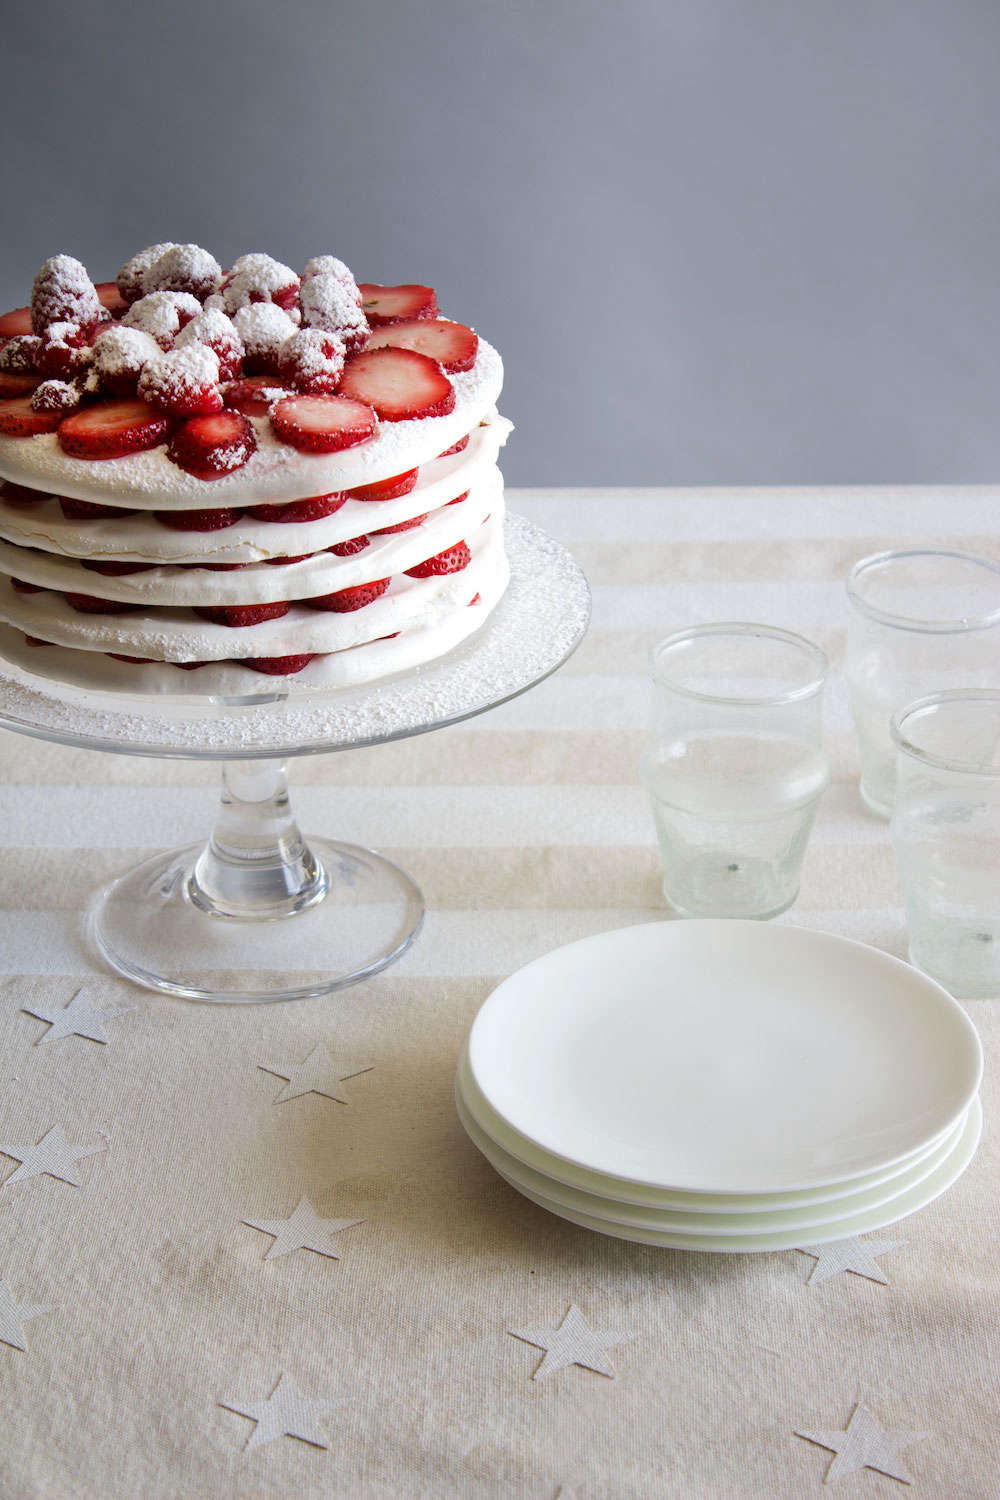 David's Fourth of July table witha strawberry meringue cake by theFashion Chefin Brooklyn.